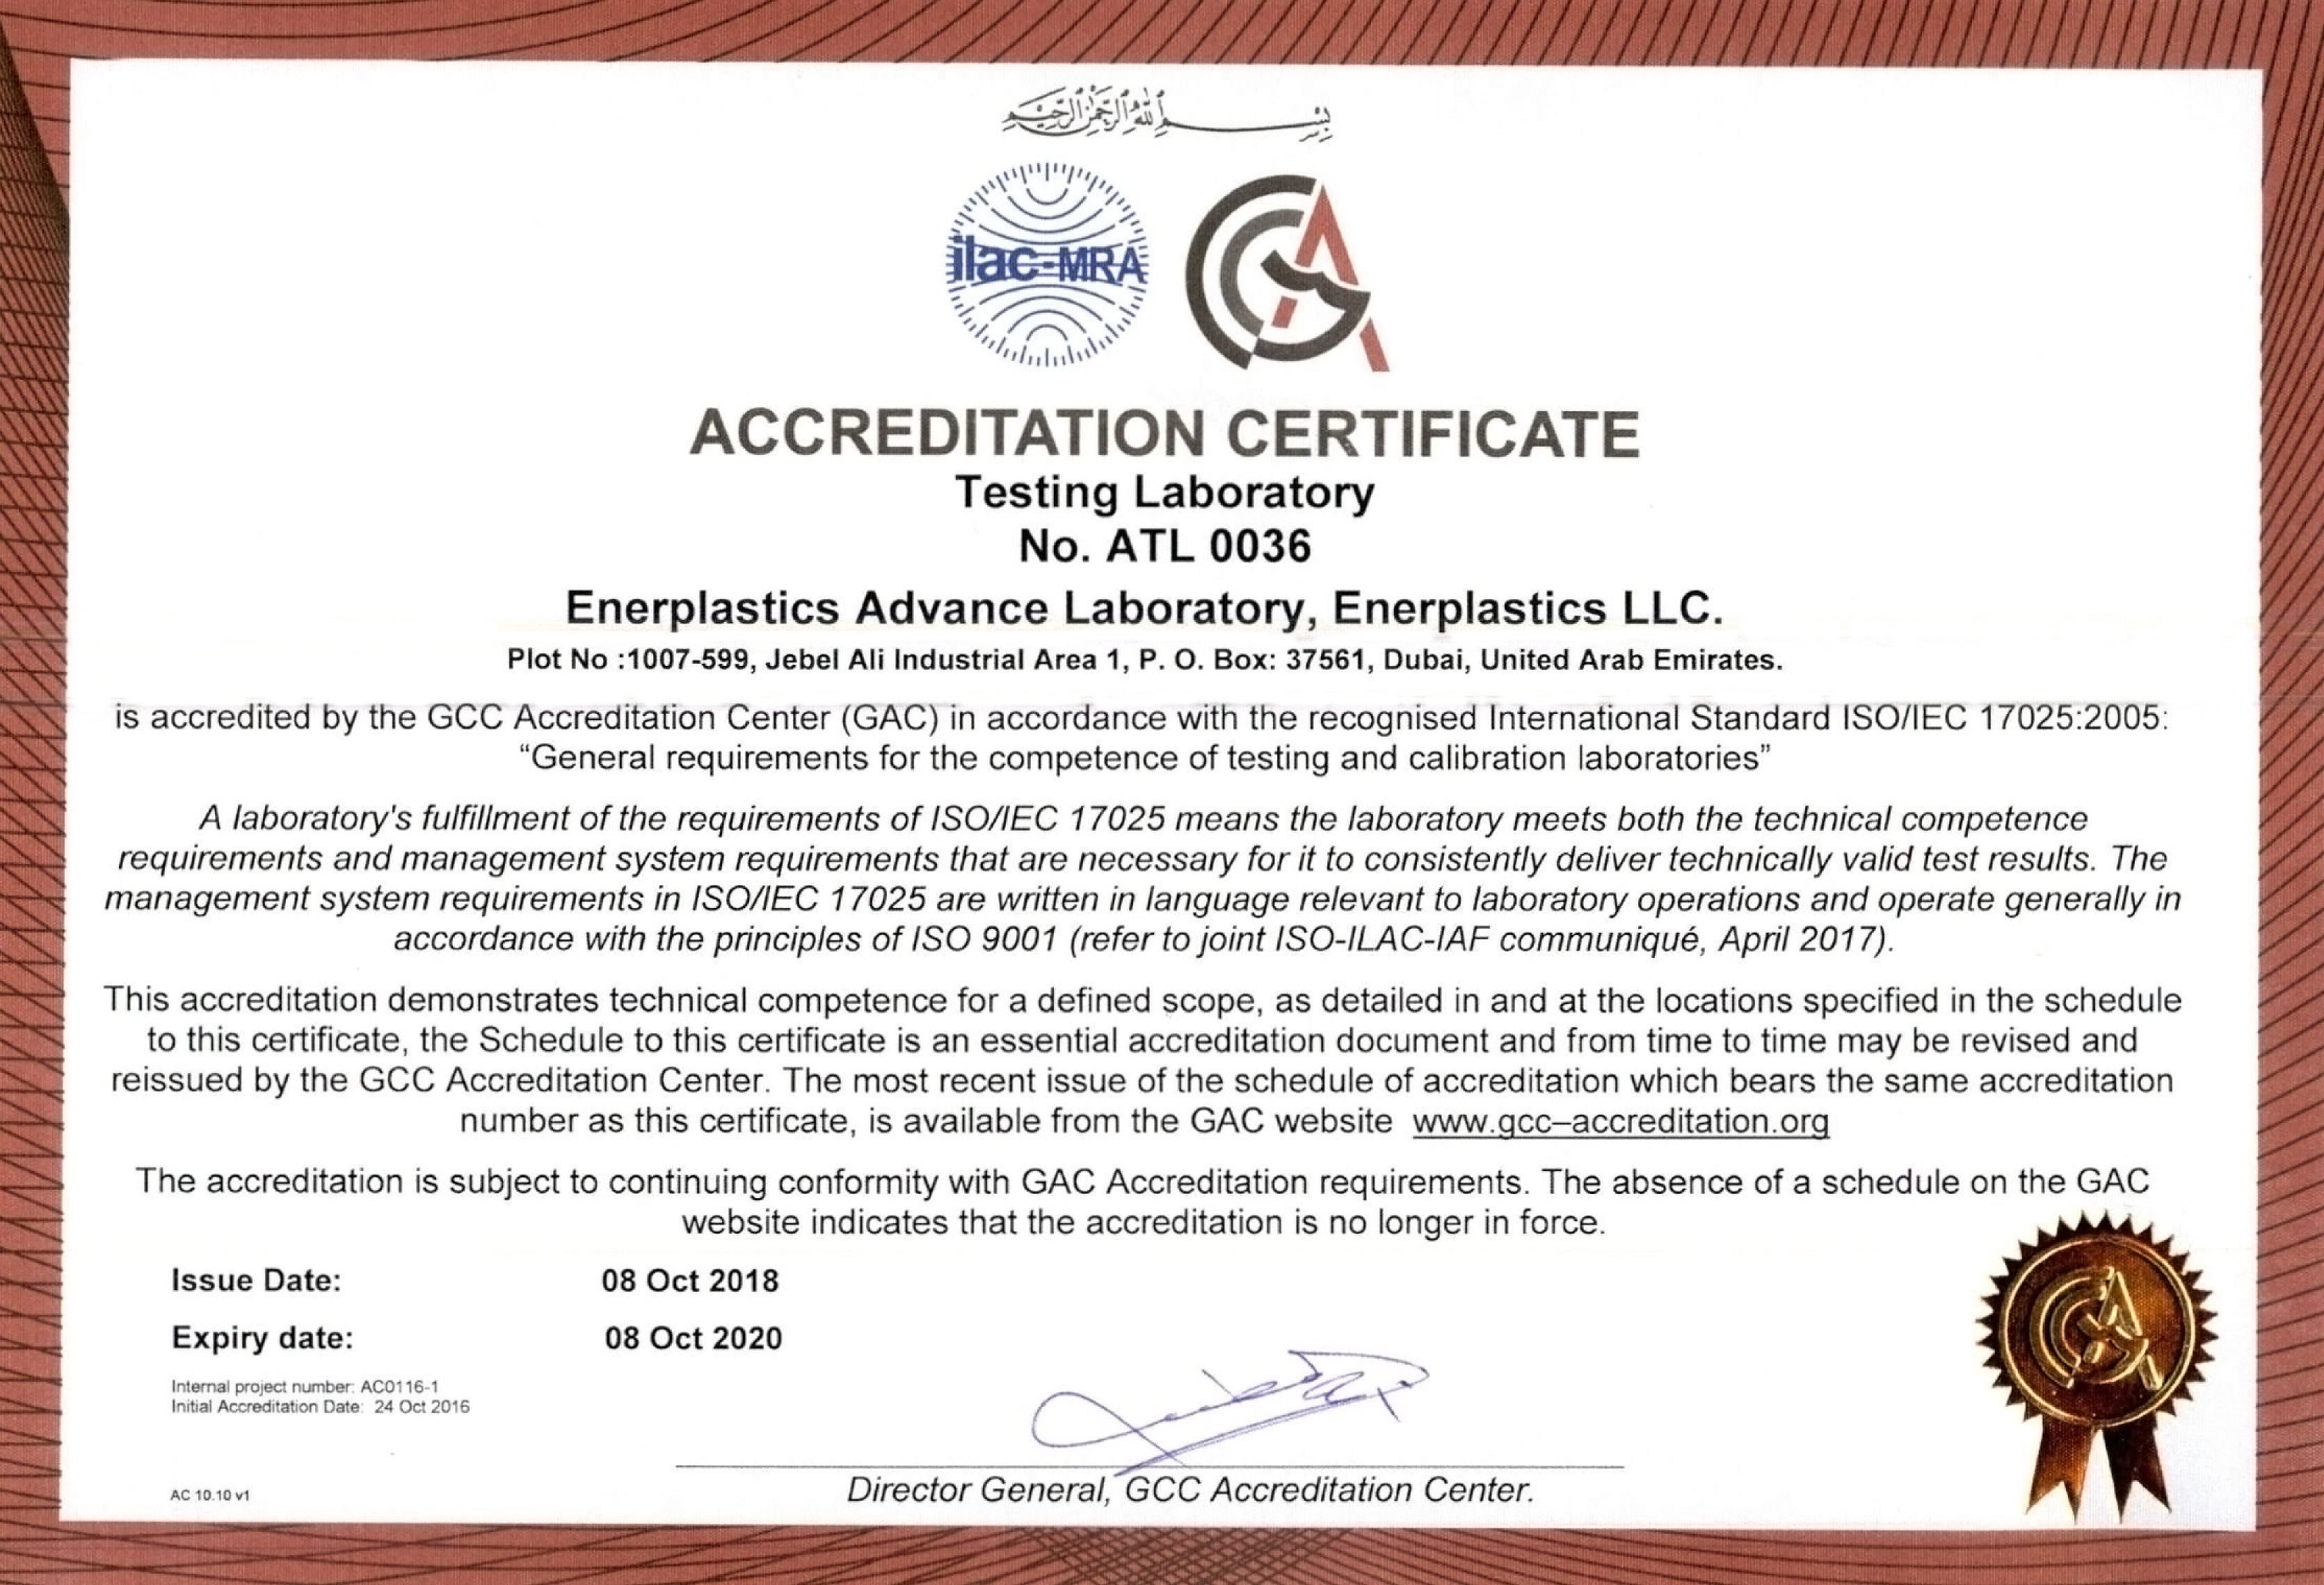 GAC ISO17025 IEC GCC ACCREDITATION ENERPLASTICS